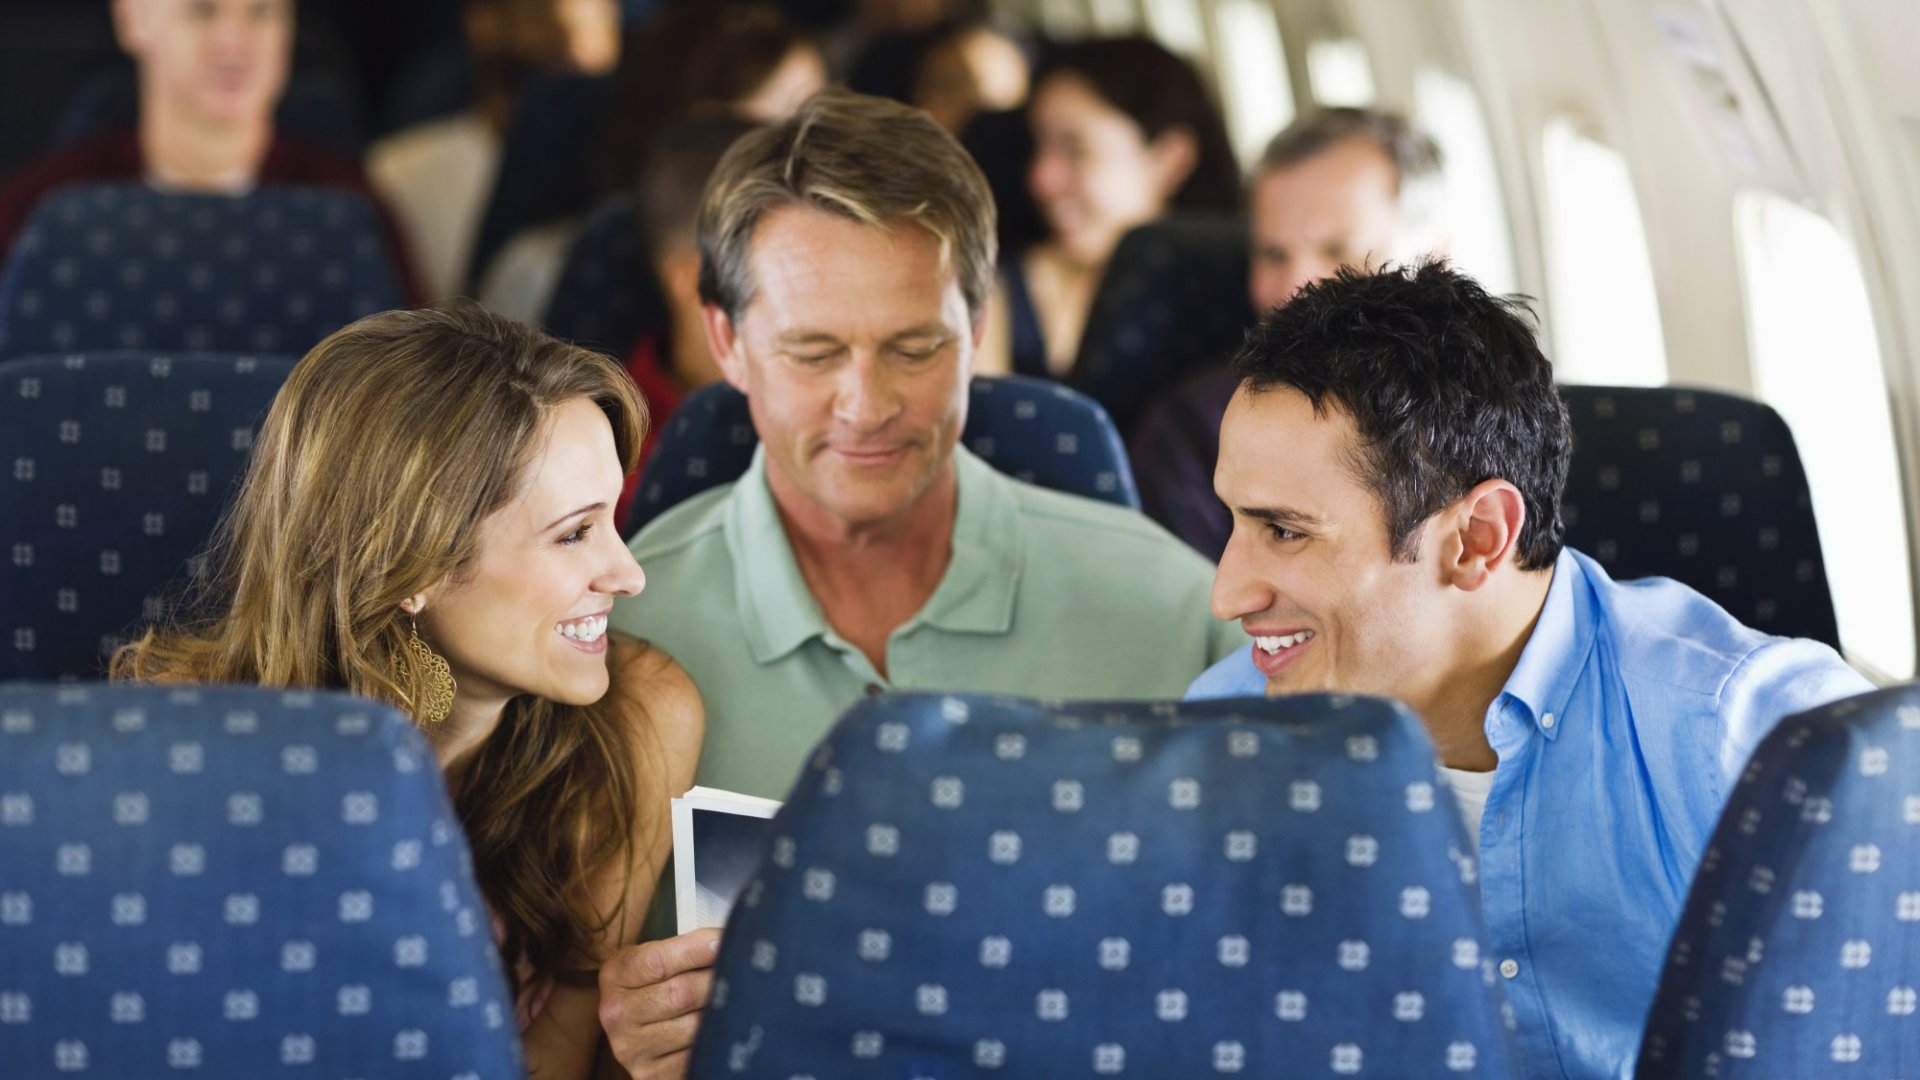 The Surprising Benefit of Talking to Strangers on an Airplane